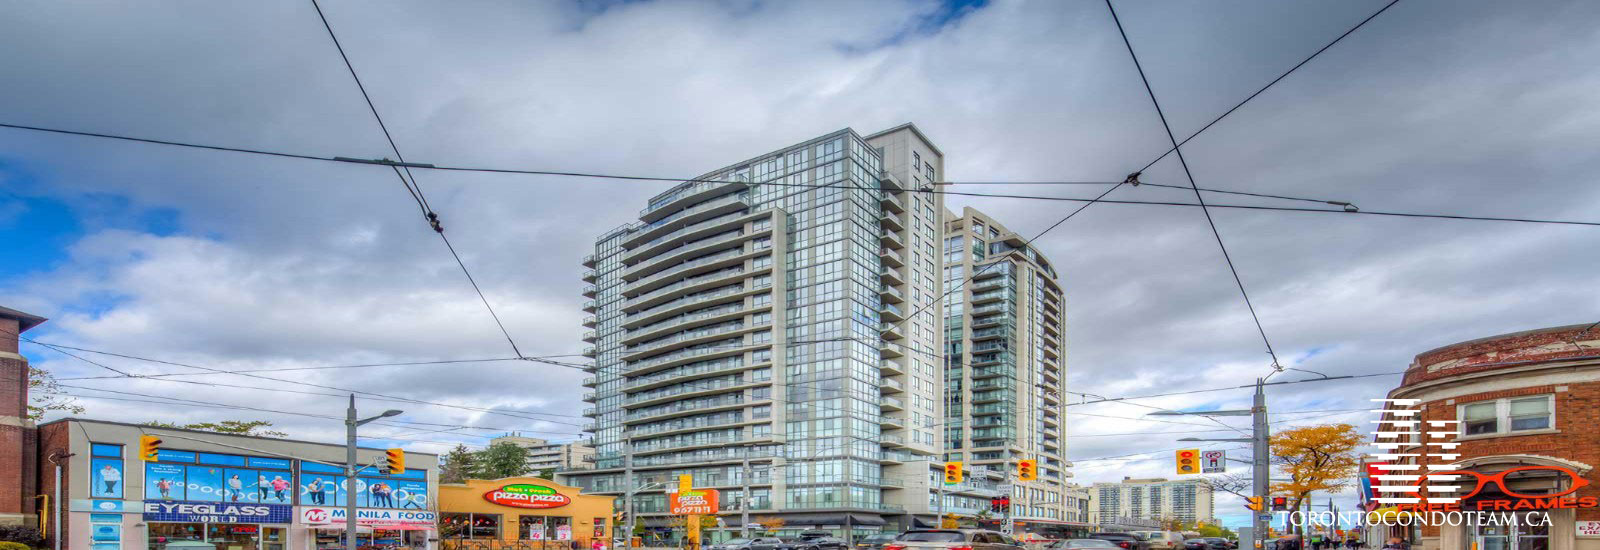 530 St Clair Avenue Condos For Sale